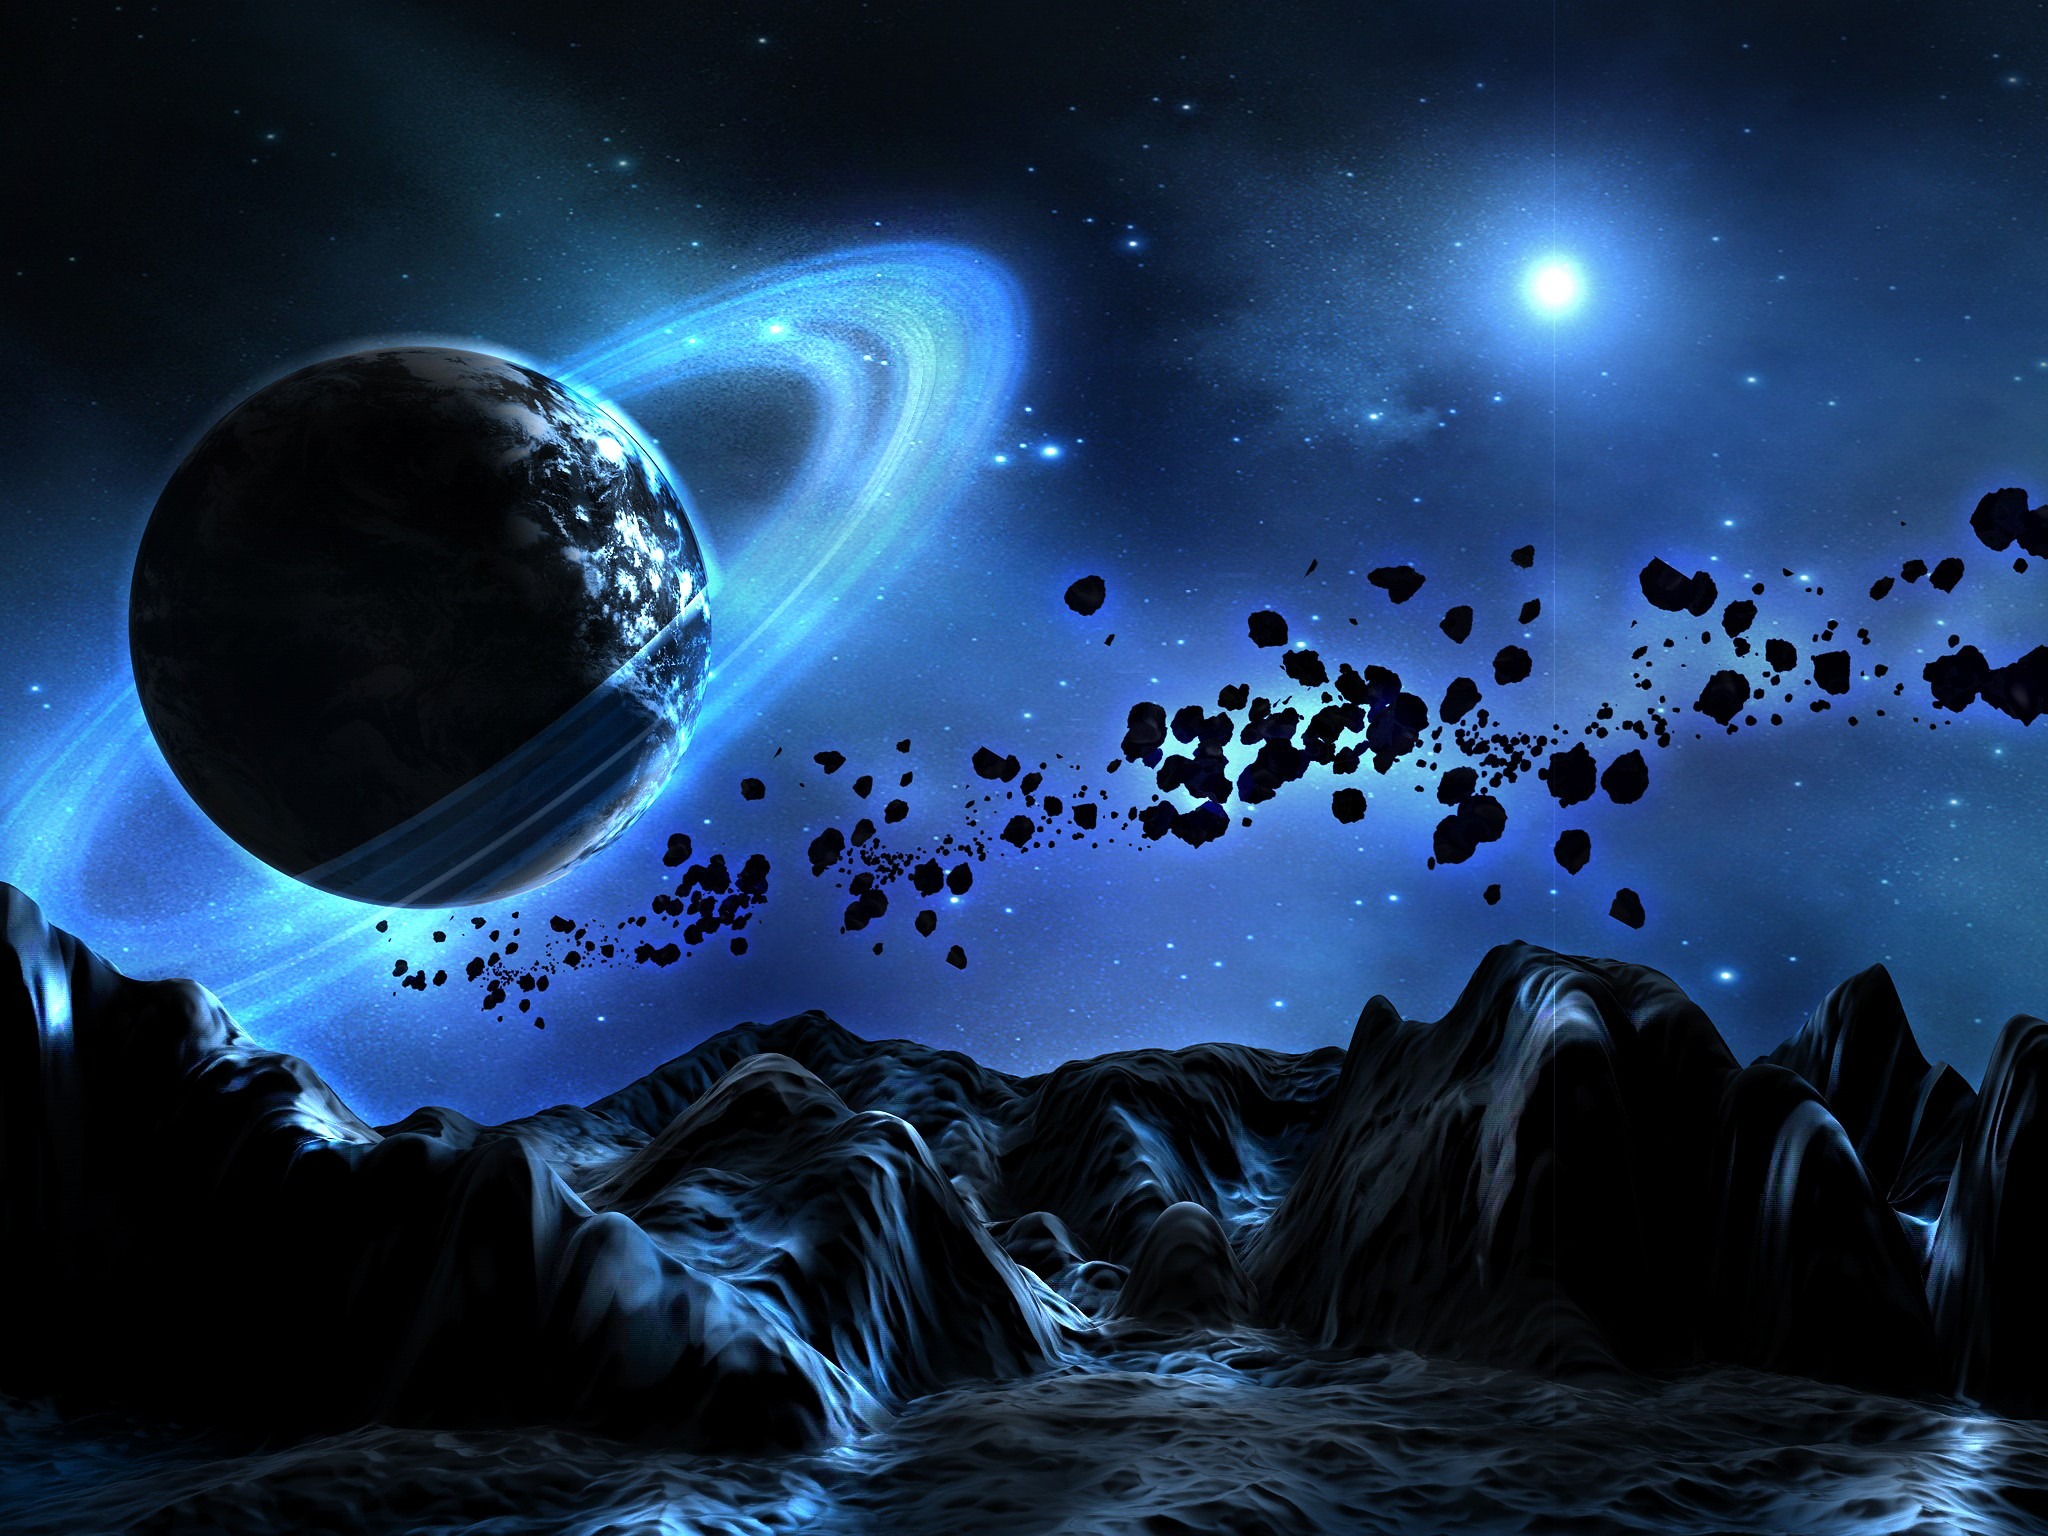 Image 3d Planets Download